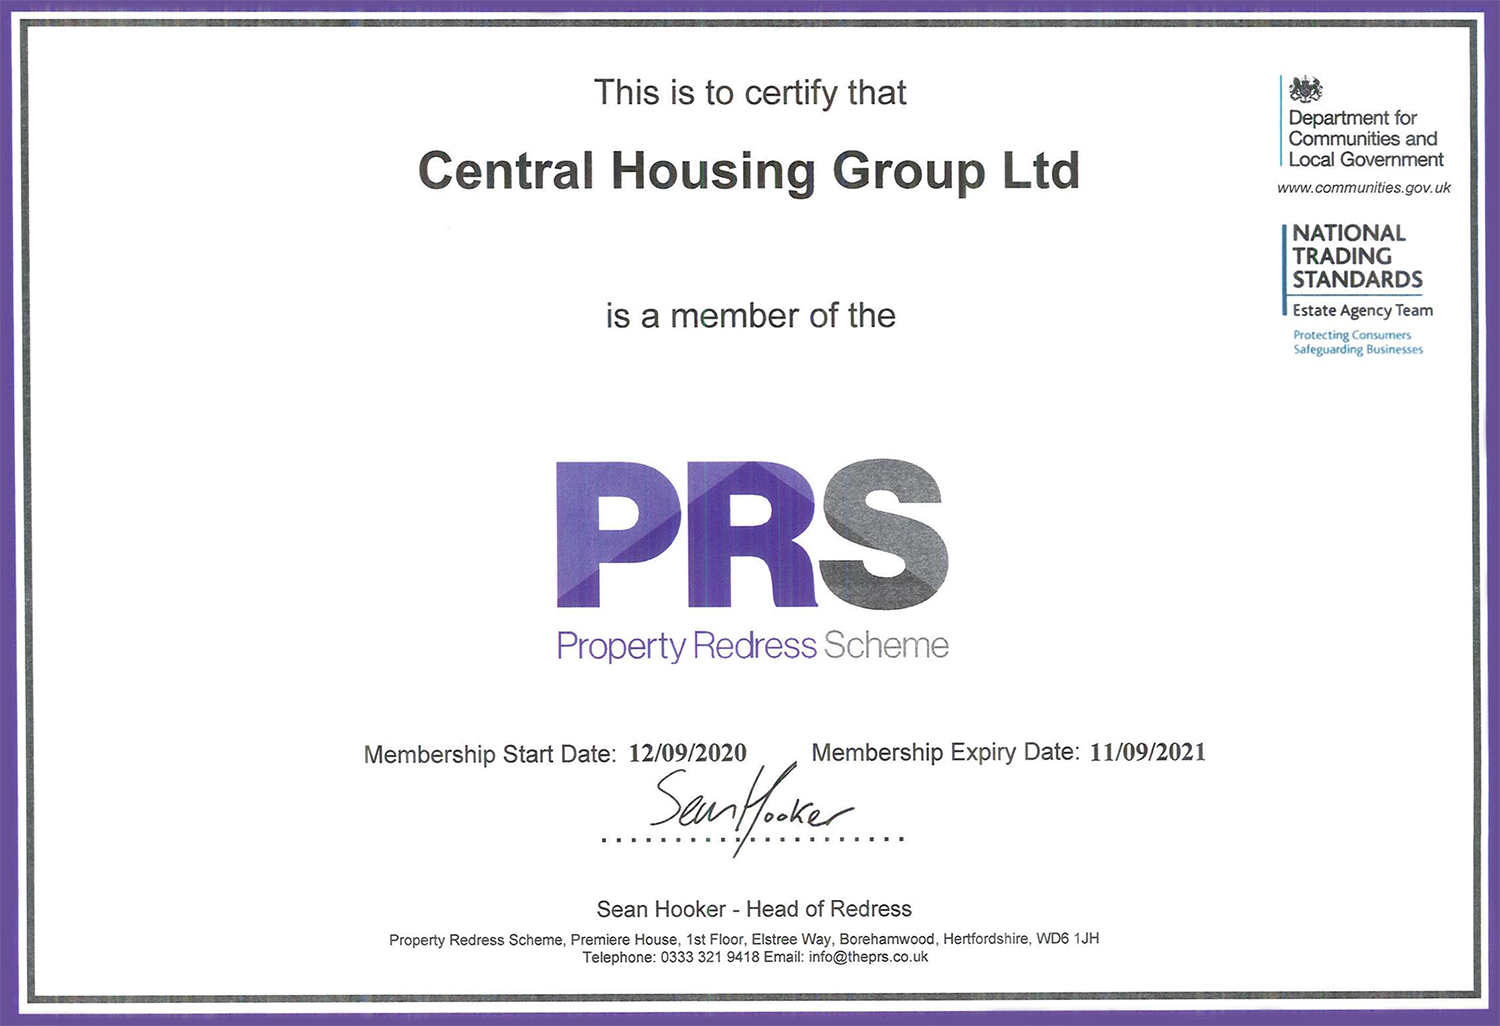 Property Redress Scheme - Central Housing Group Ltd